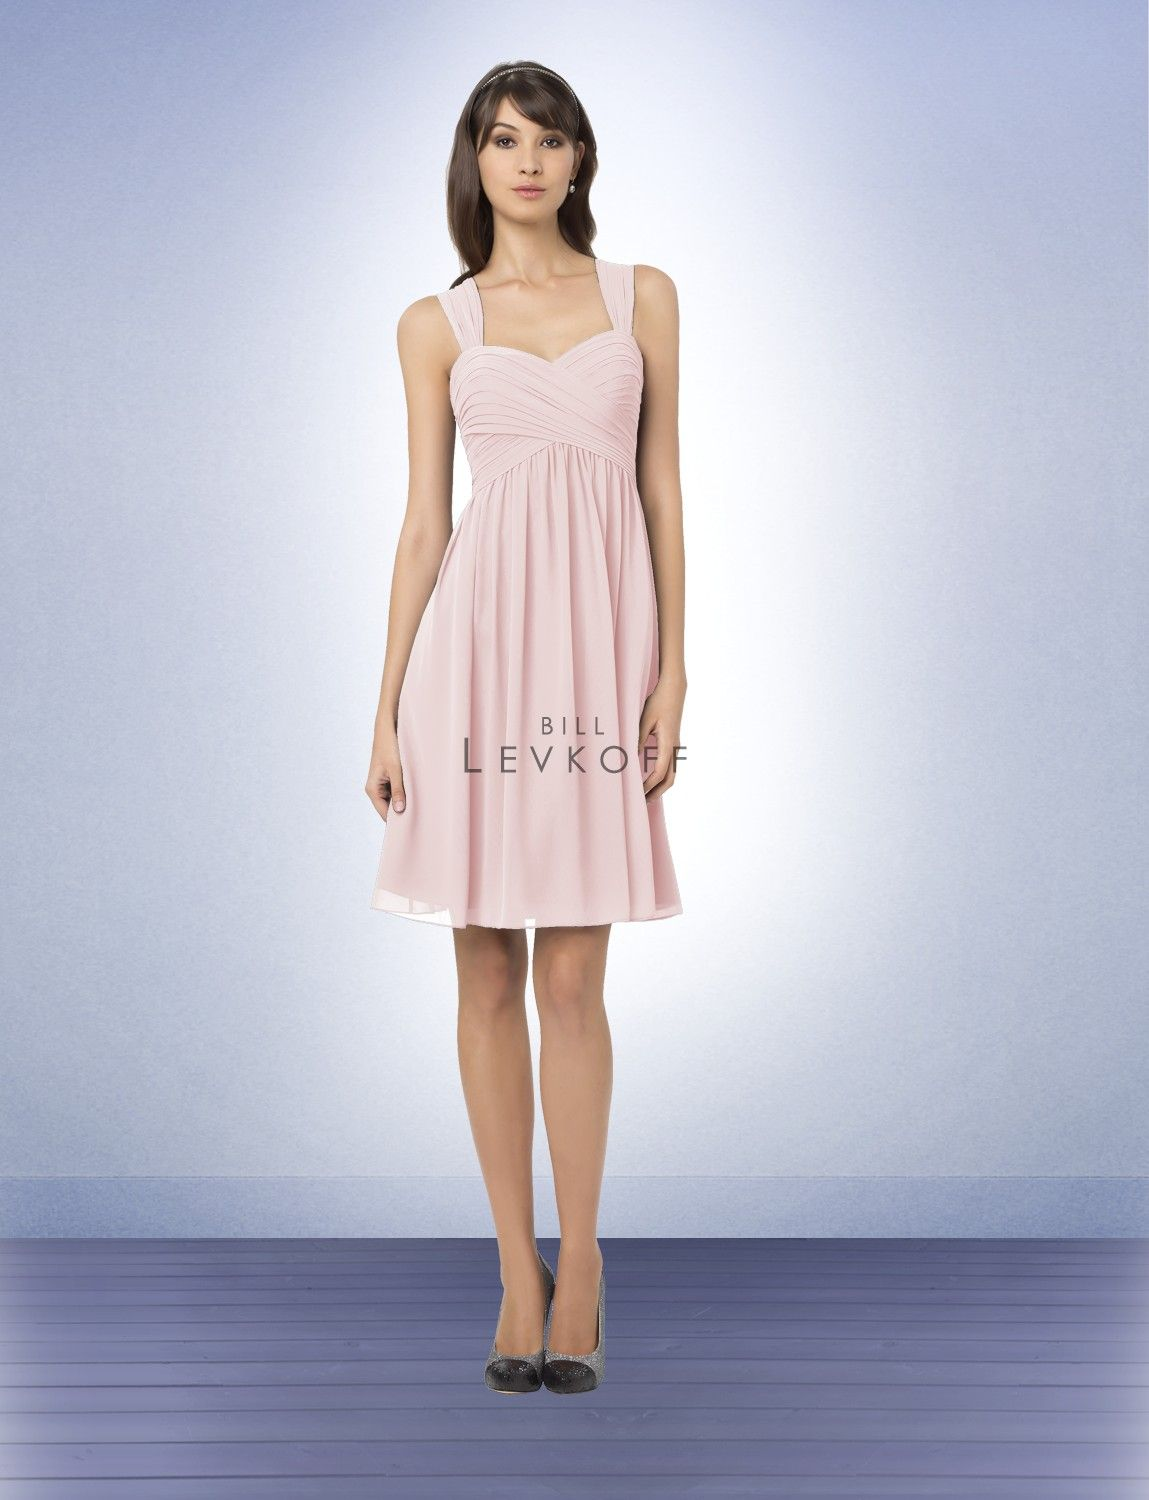 Dress for wedding party for girl  Bridesmaid Dress Style   Bridesmaid Dresses by Bill Levkoff